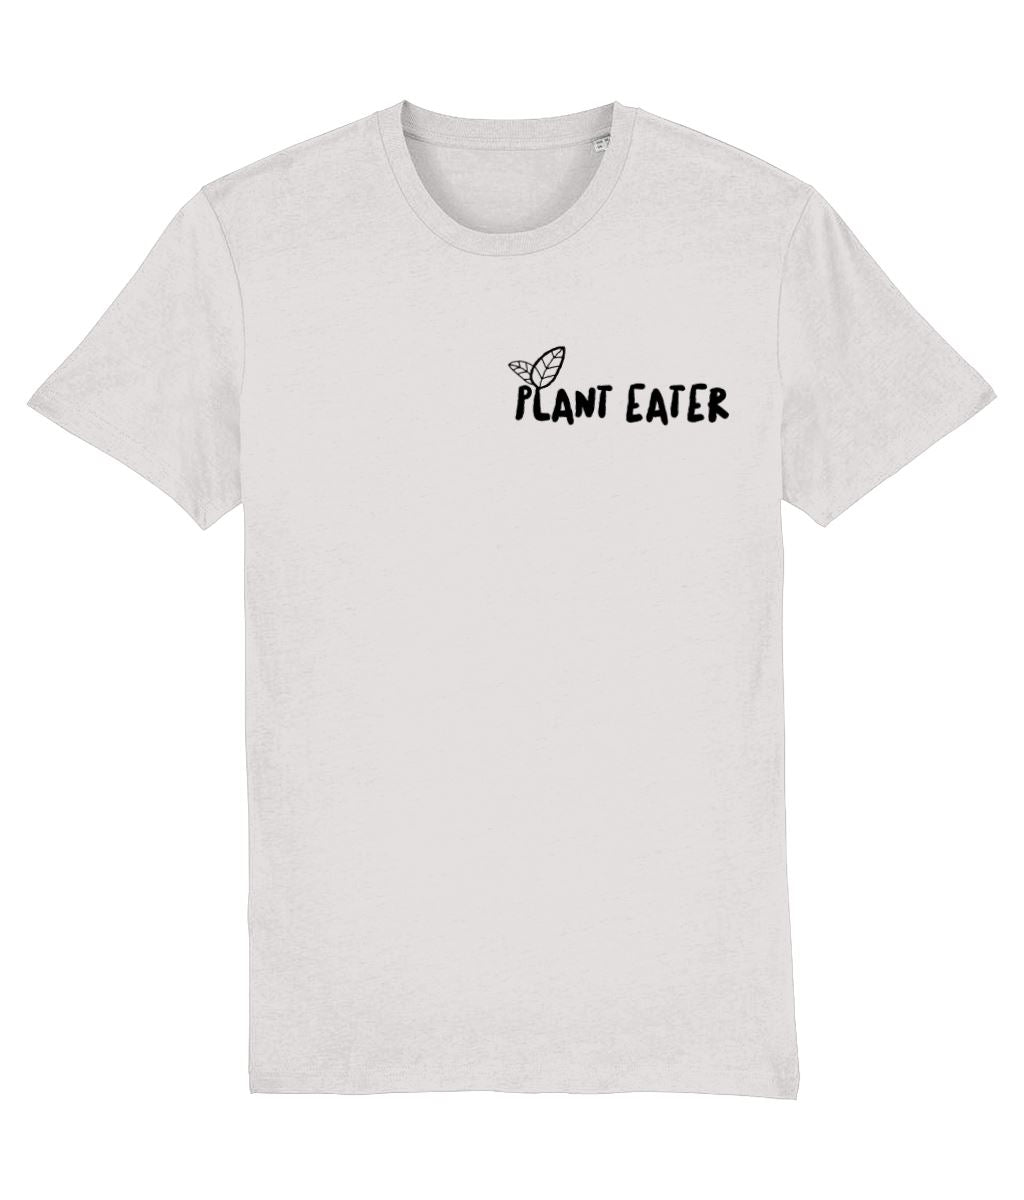 """Plant Eater"" Vegan T-Shirt - 100% Organic Cotton (Unisex) Clothing Vegan Original Cream Heather Grey XX-Small"